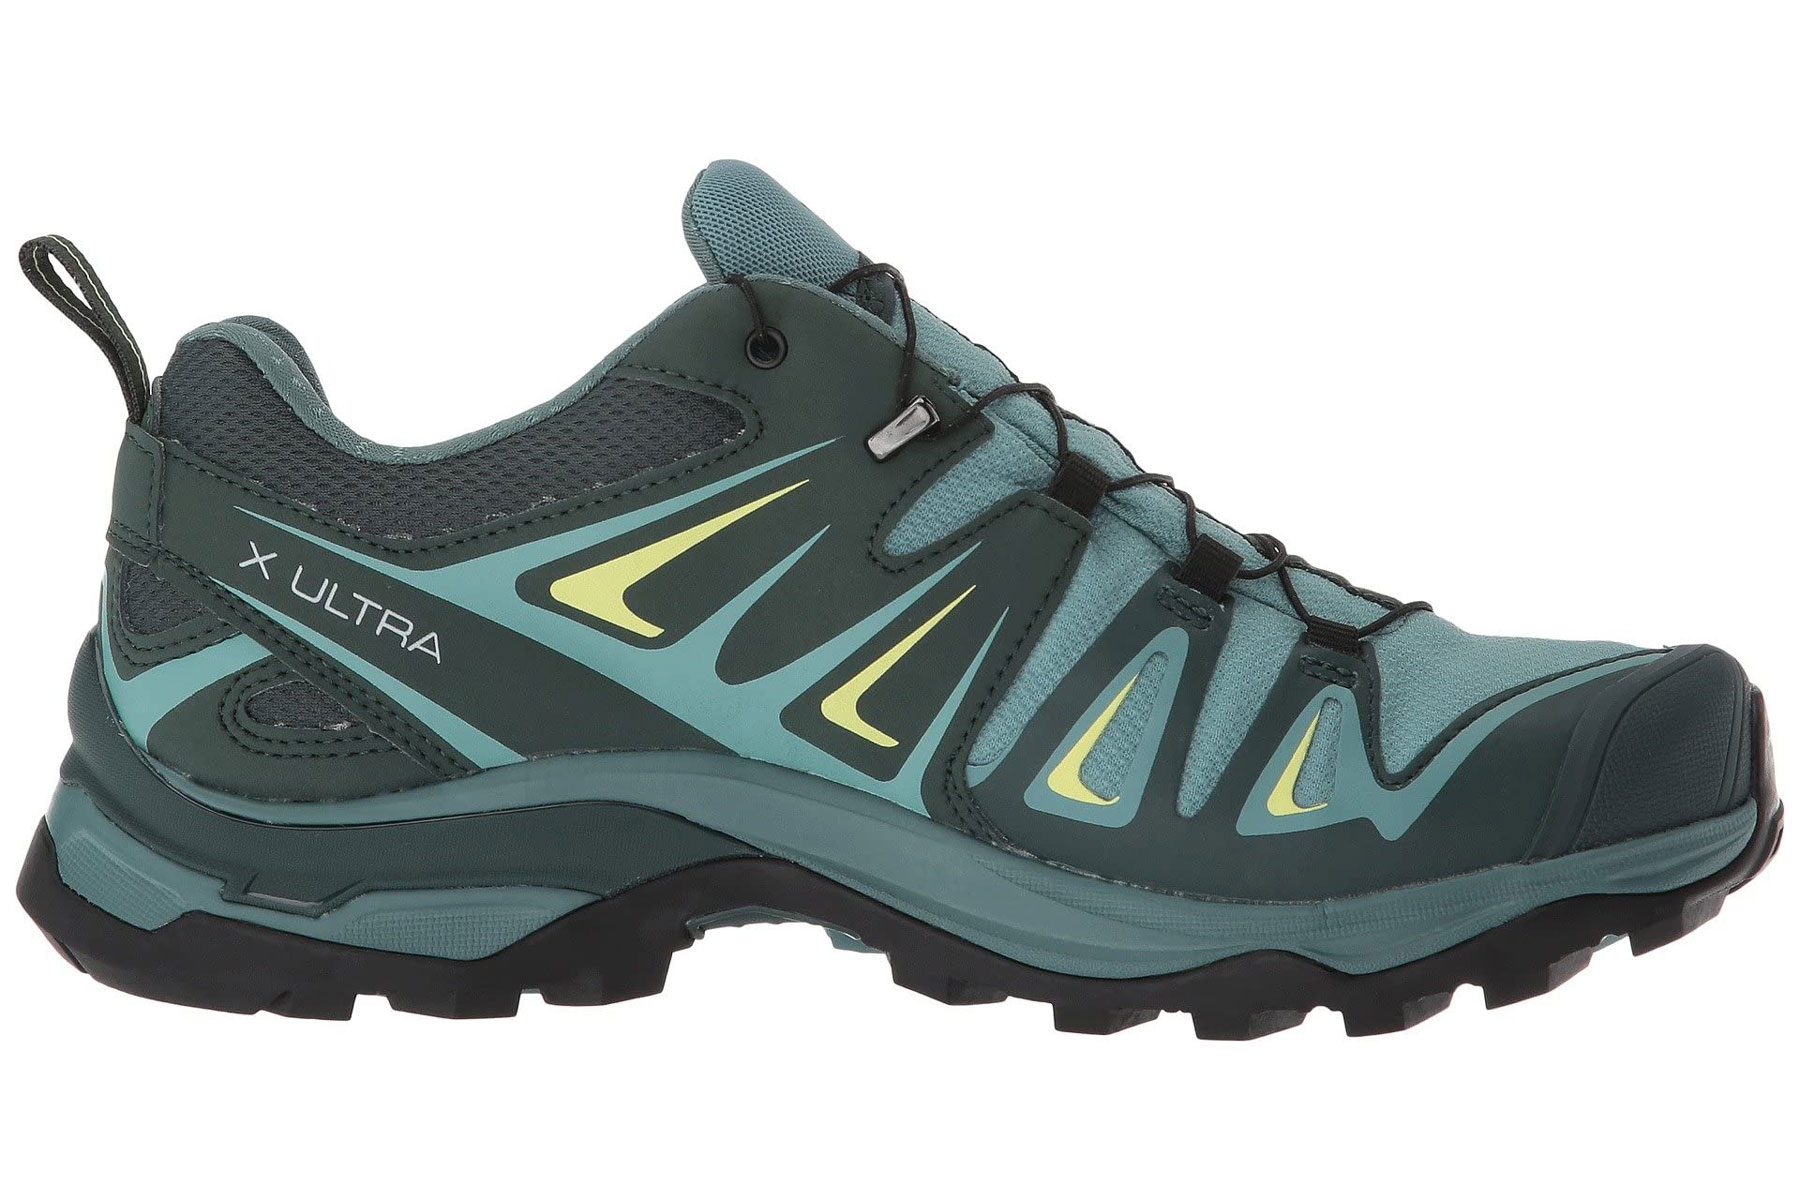 Green and blue hiking shoes